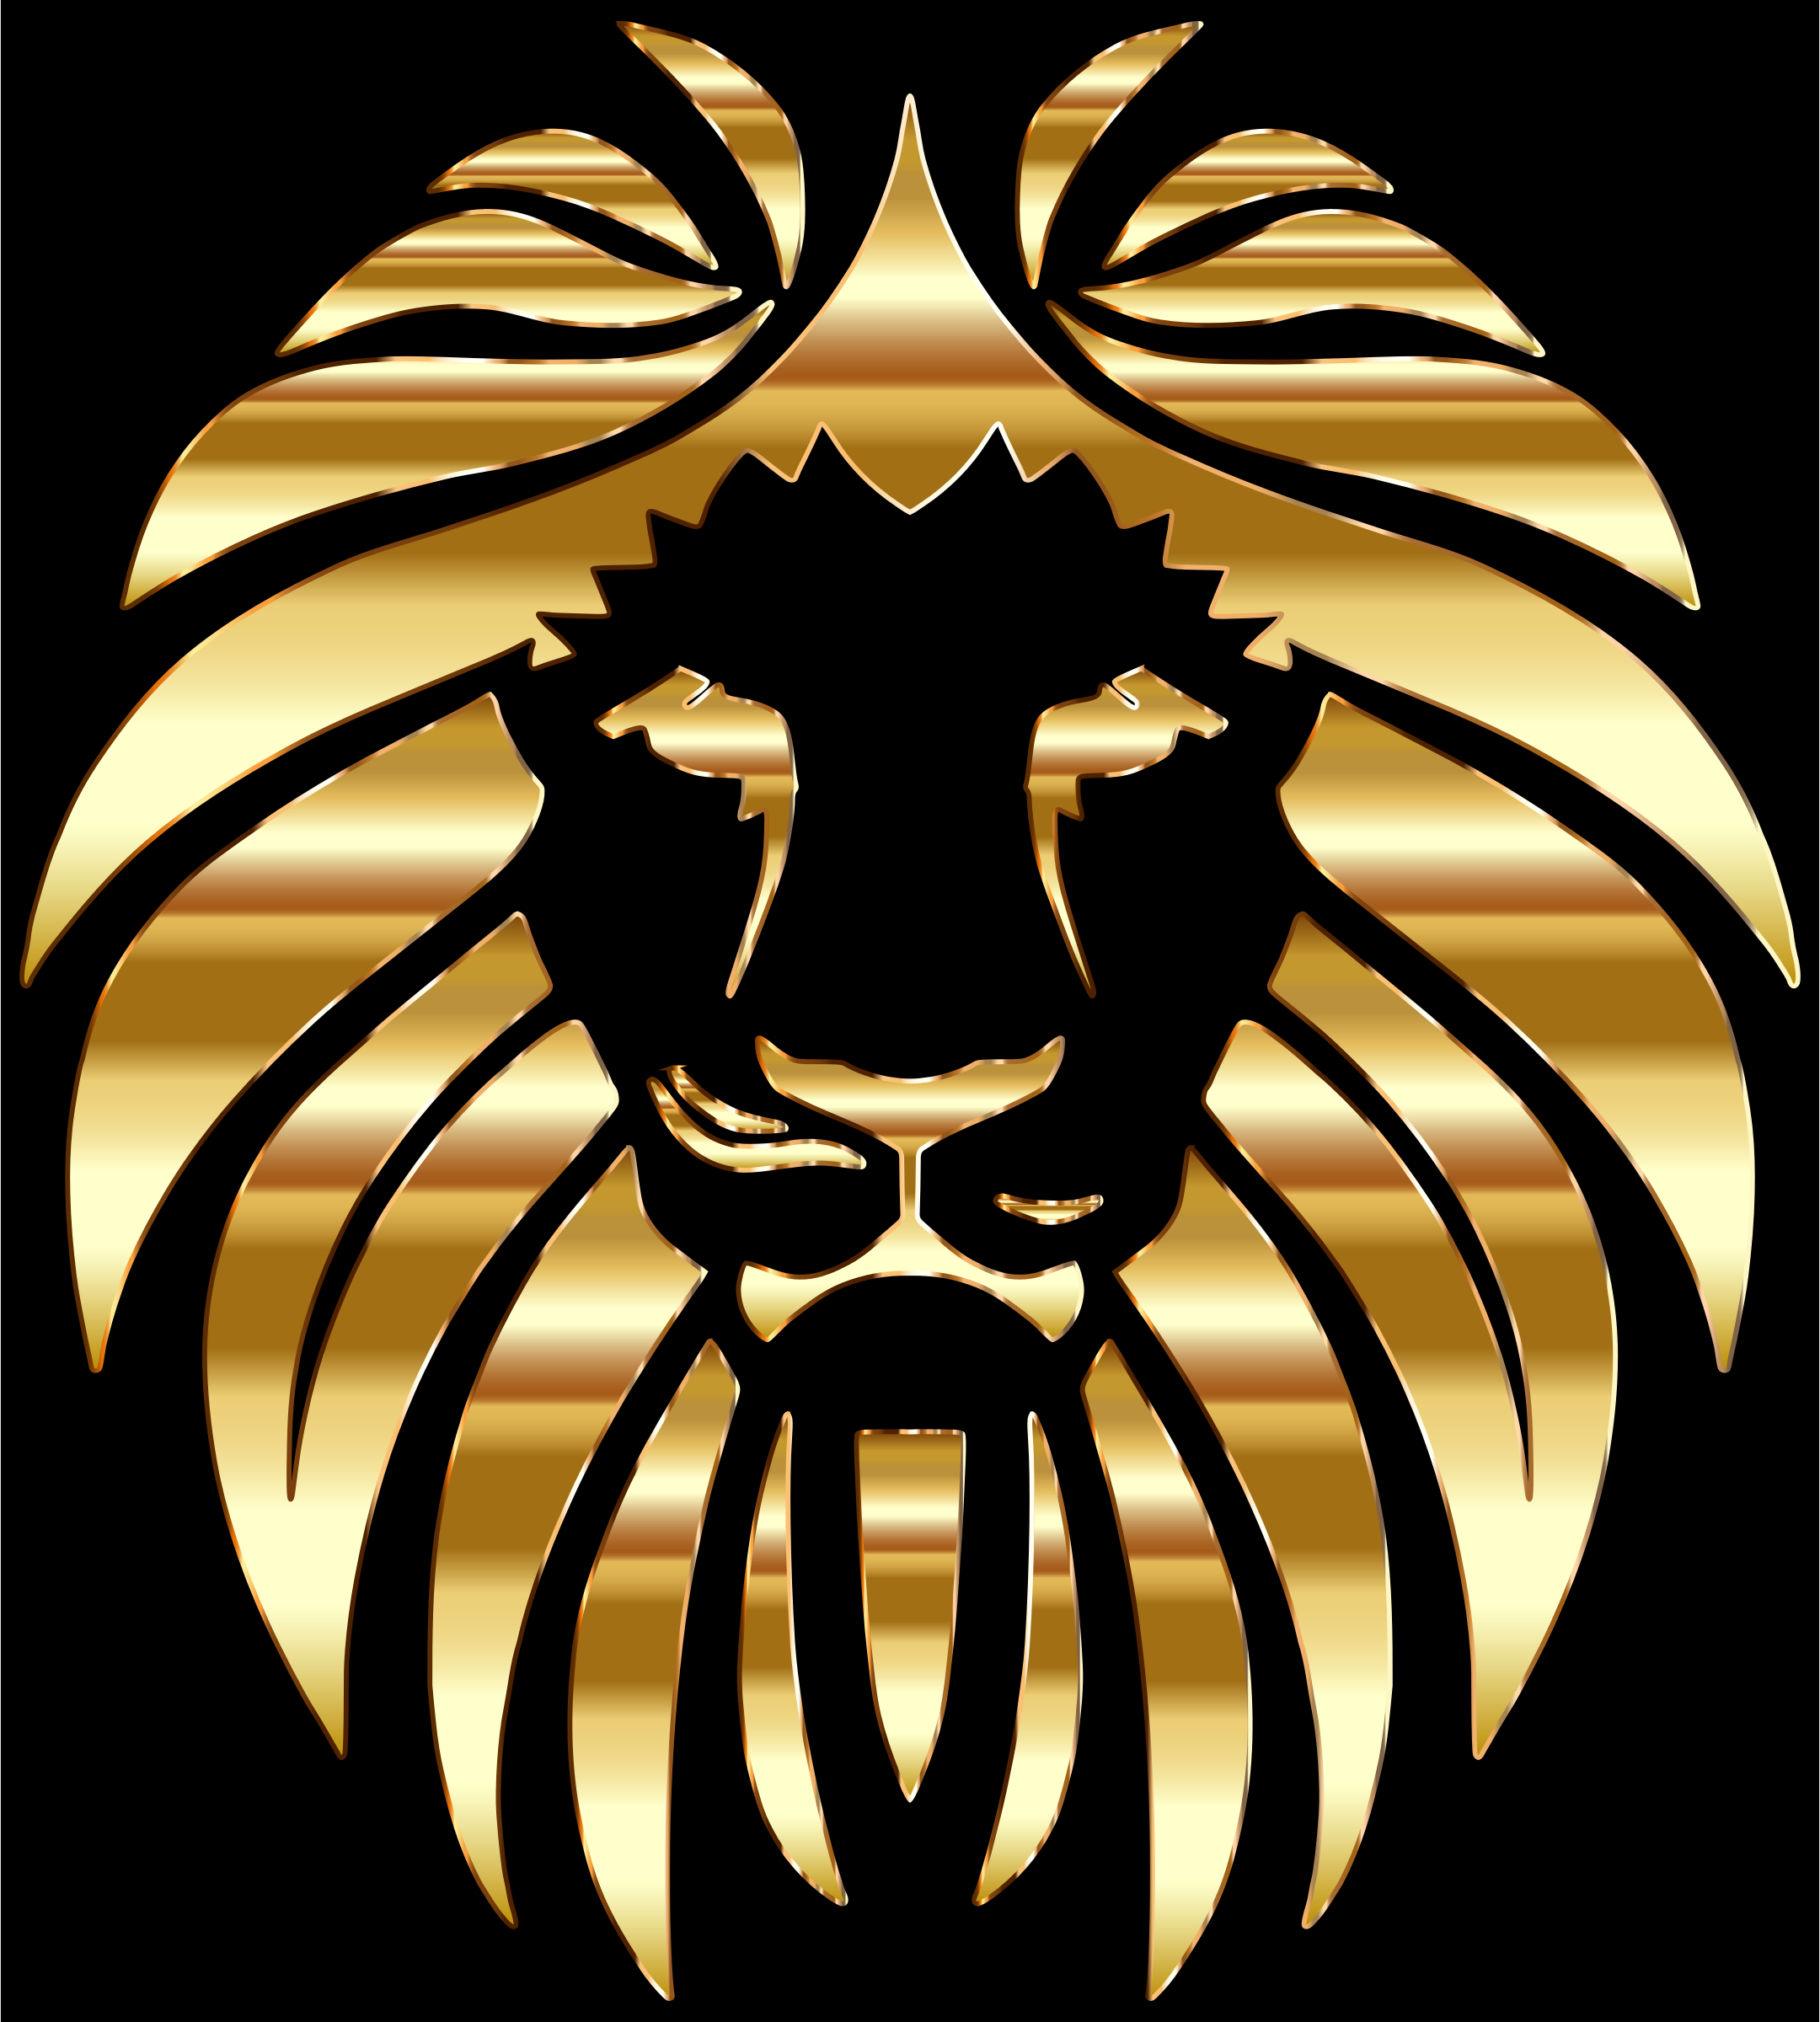 Golden Lion by GDJ